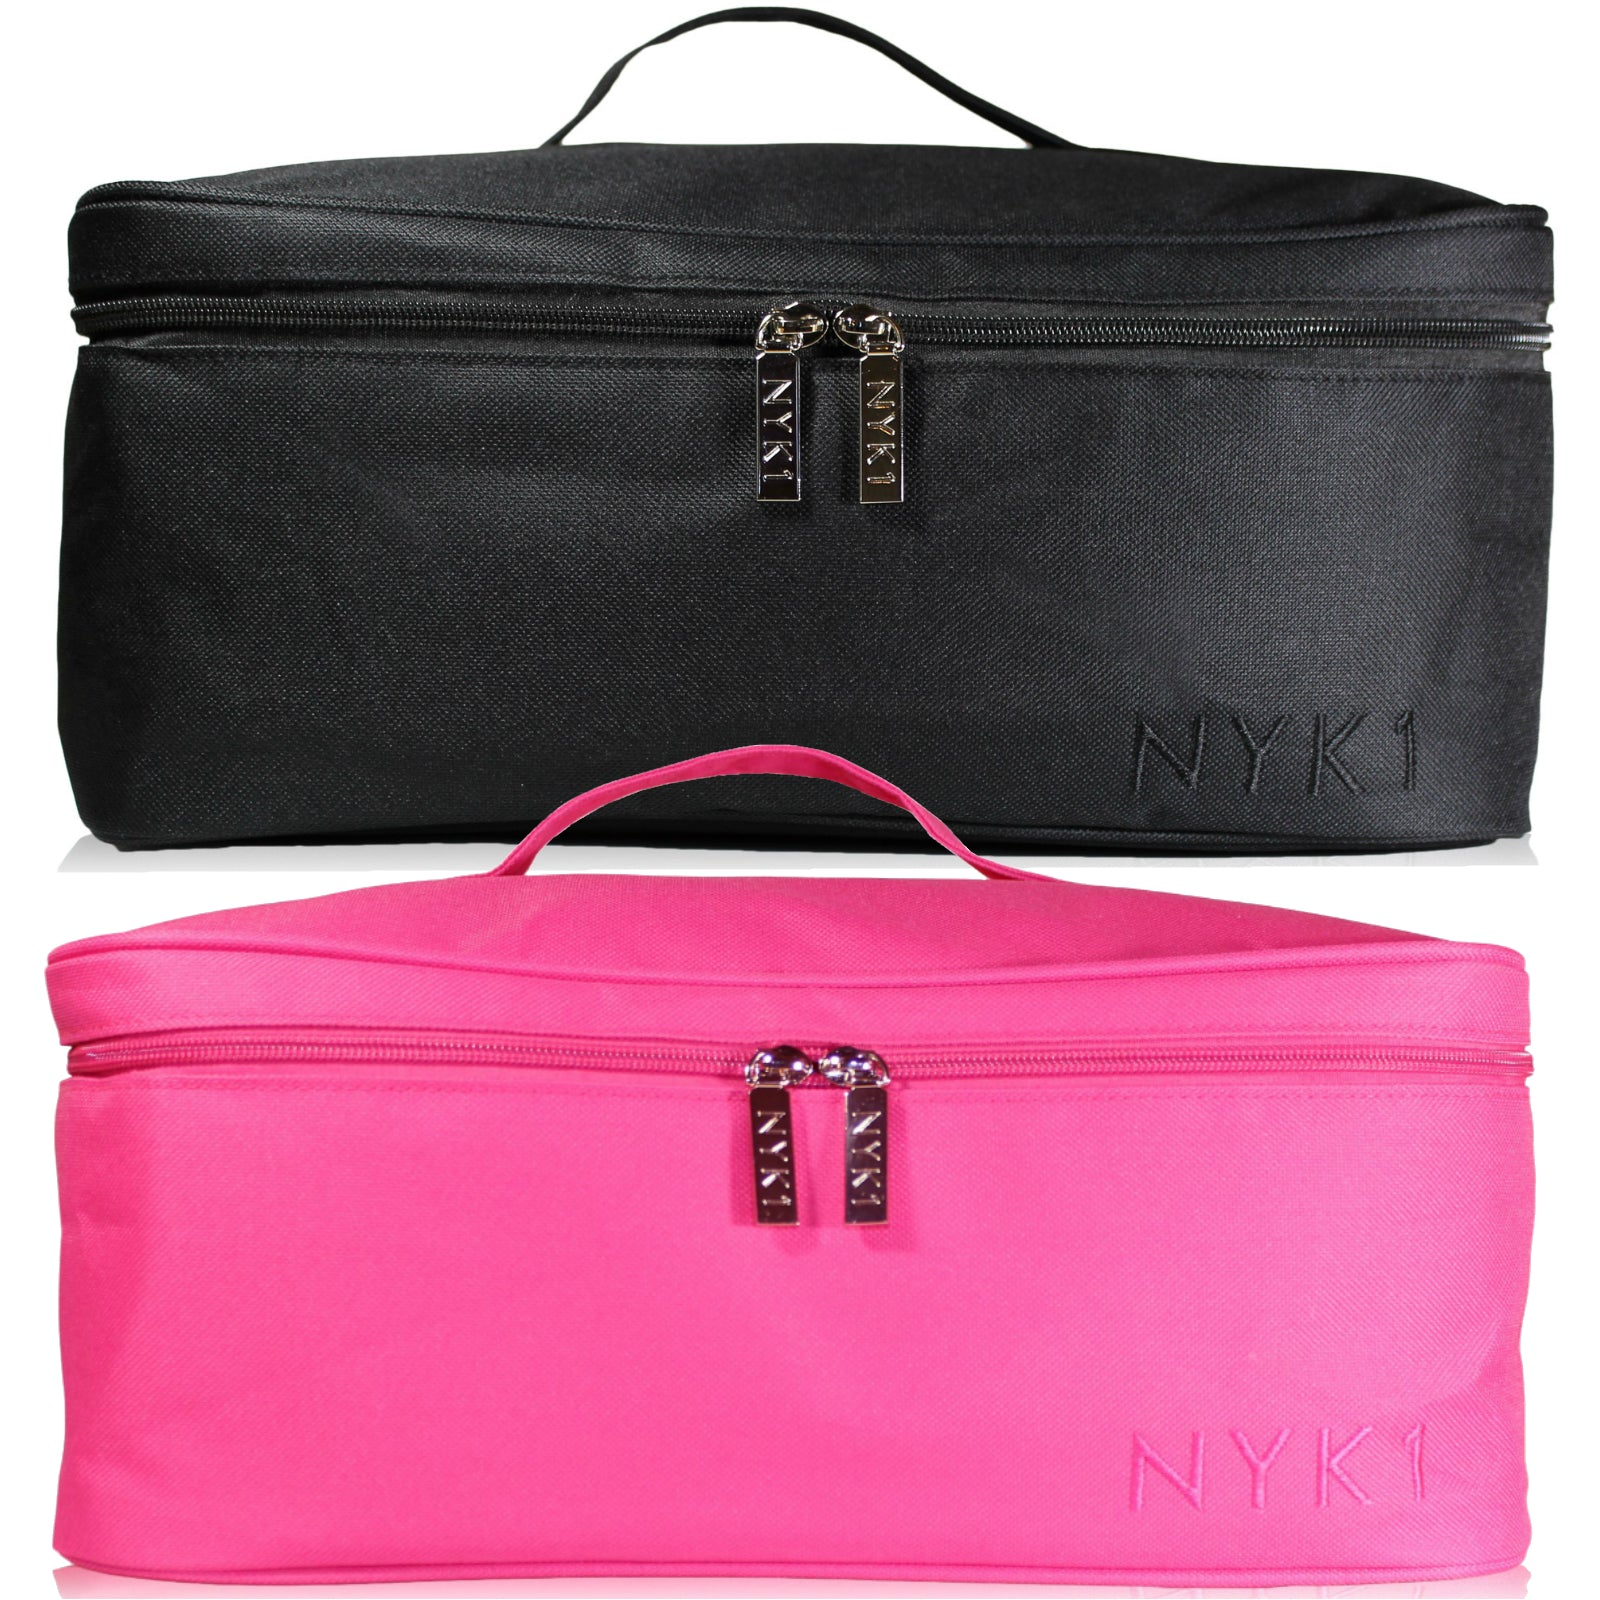 NYK1 Cosmetic Make Up Vanity Case Bag Pink or Black